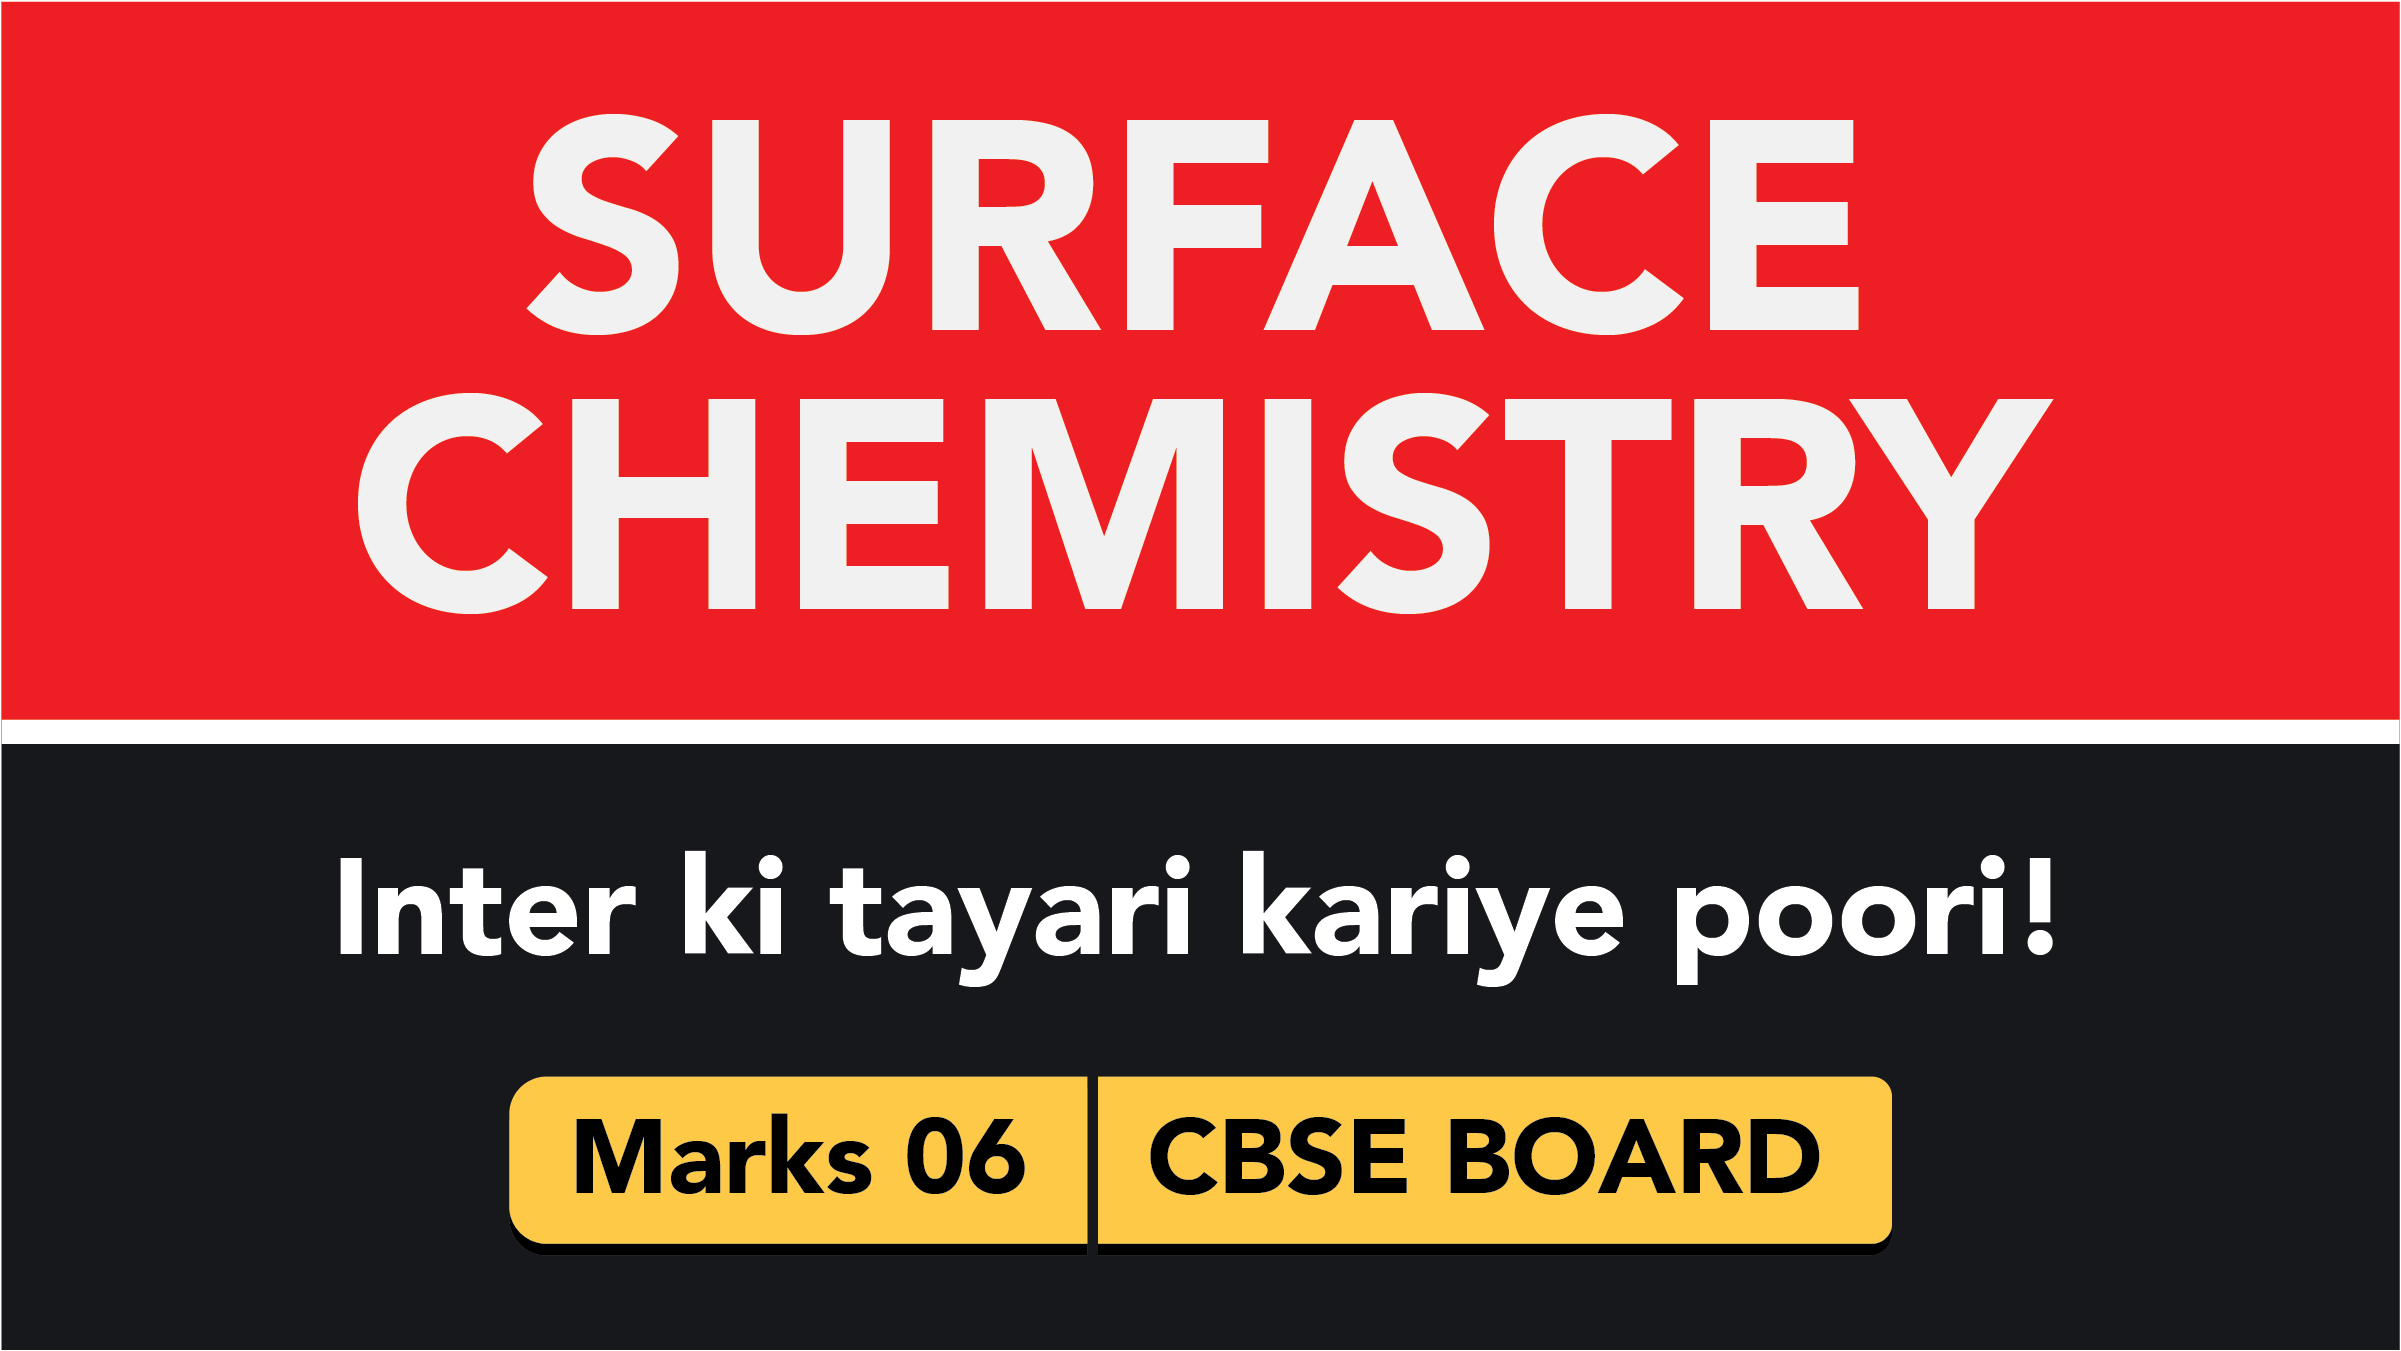 CBSE Board Class 12 SURFACE CHEMISTRY    Weightage and Important Topics